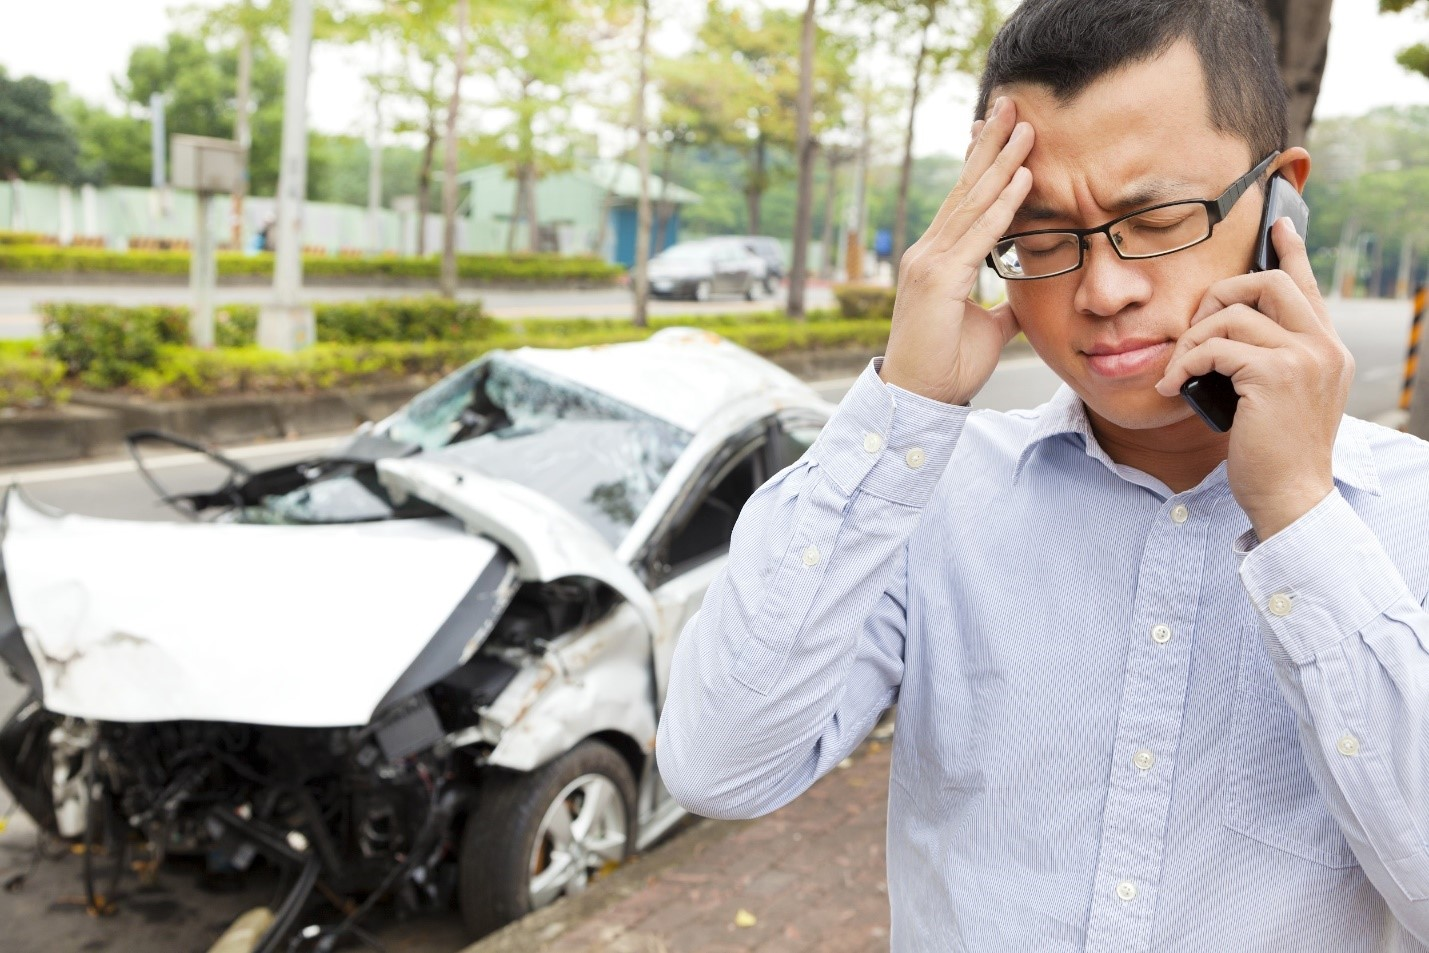 Accidents are always unfortunate, but knowing what to do can help ease the situation. Be prepared for what happens before and after an accident by keeping Breezy Point Auto Body's phone number handy!